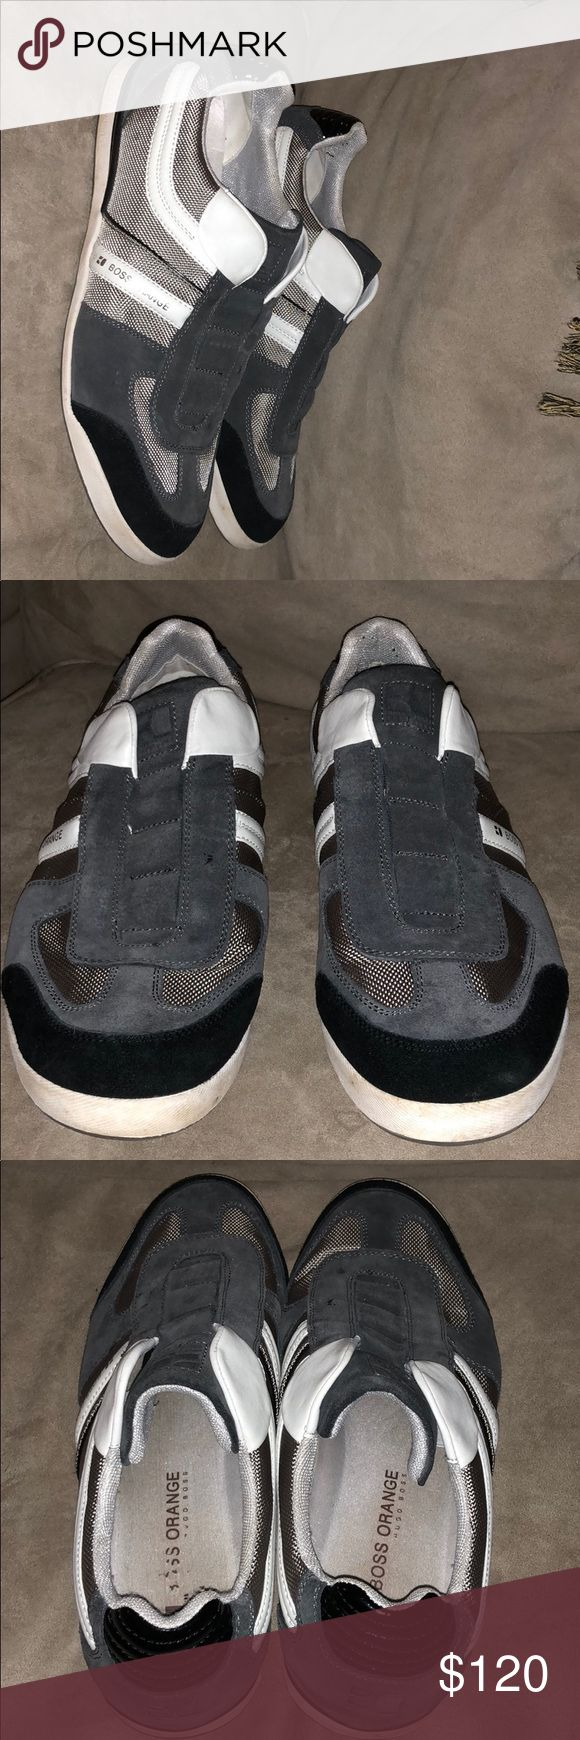 Boss Men's Sneakers Only wore twice. Like new. No flaws. Gray Suede also black and white. The name of them are called Boss Orange which is a limited edition of Boss. 100% Authentic. BOSS ORANGE Shoes Sneakers